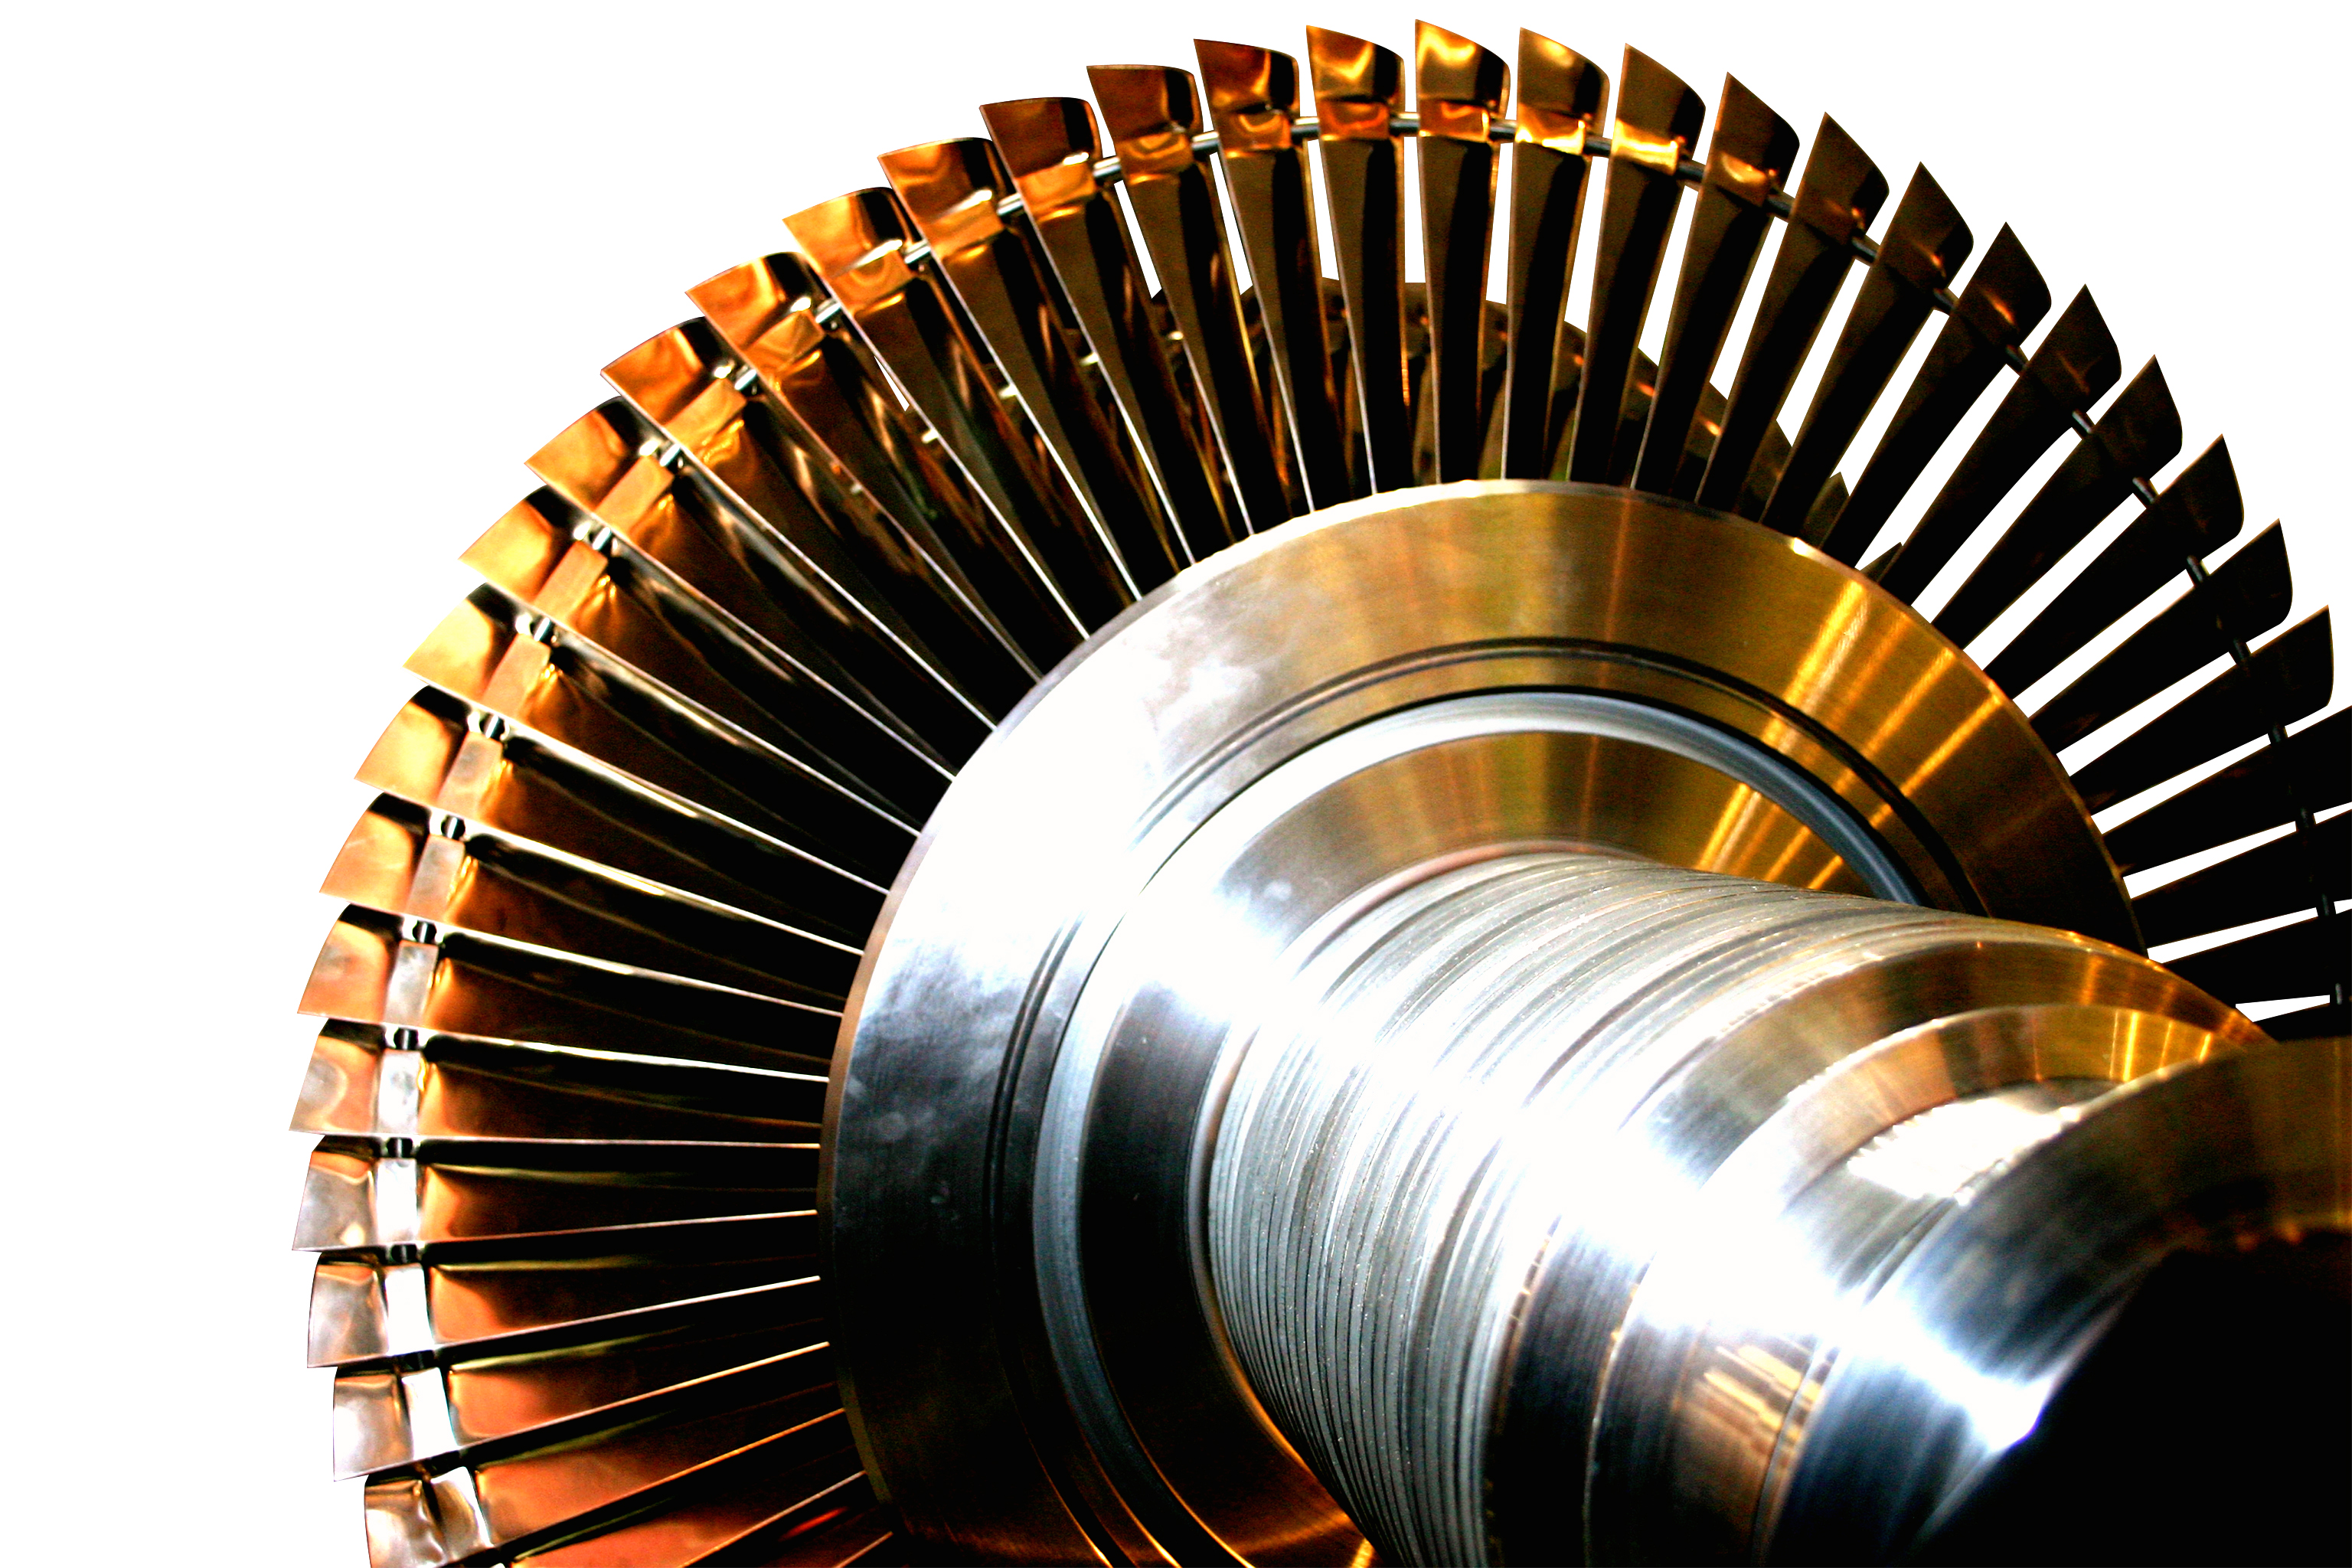 turbine-cog-wheel-industrial-renewable-energy